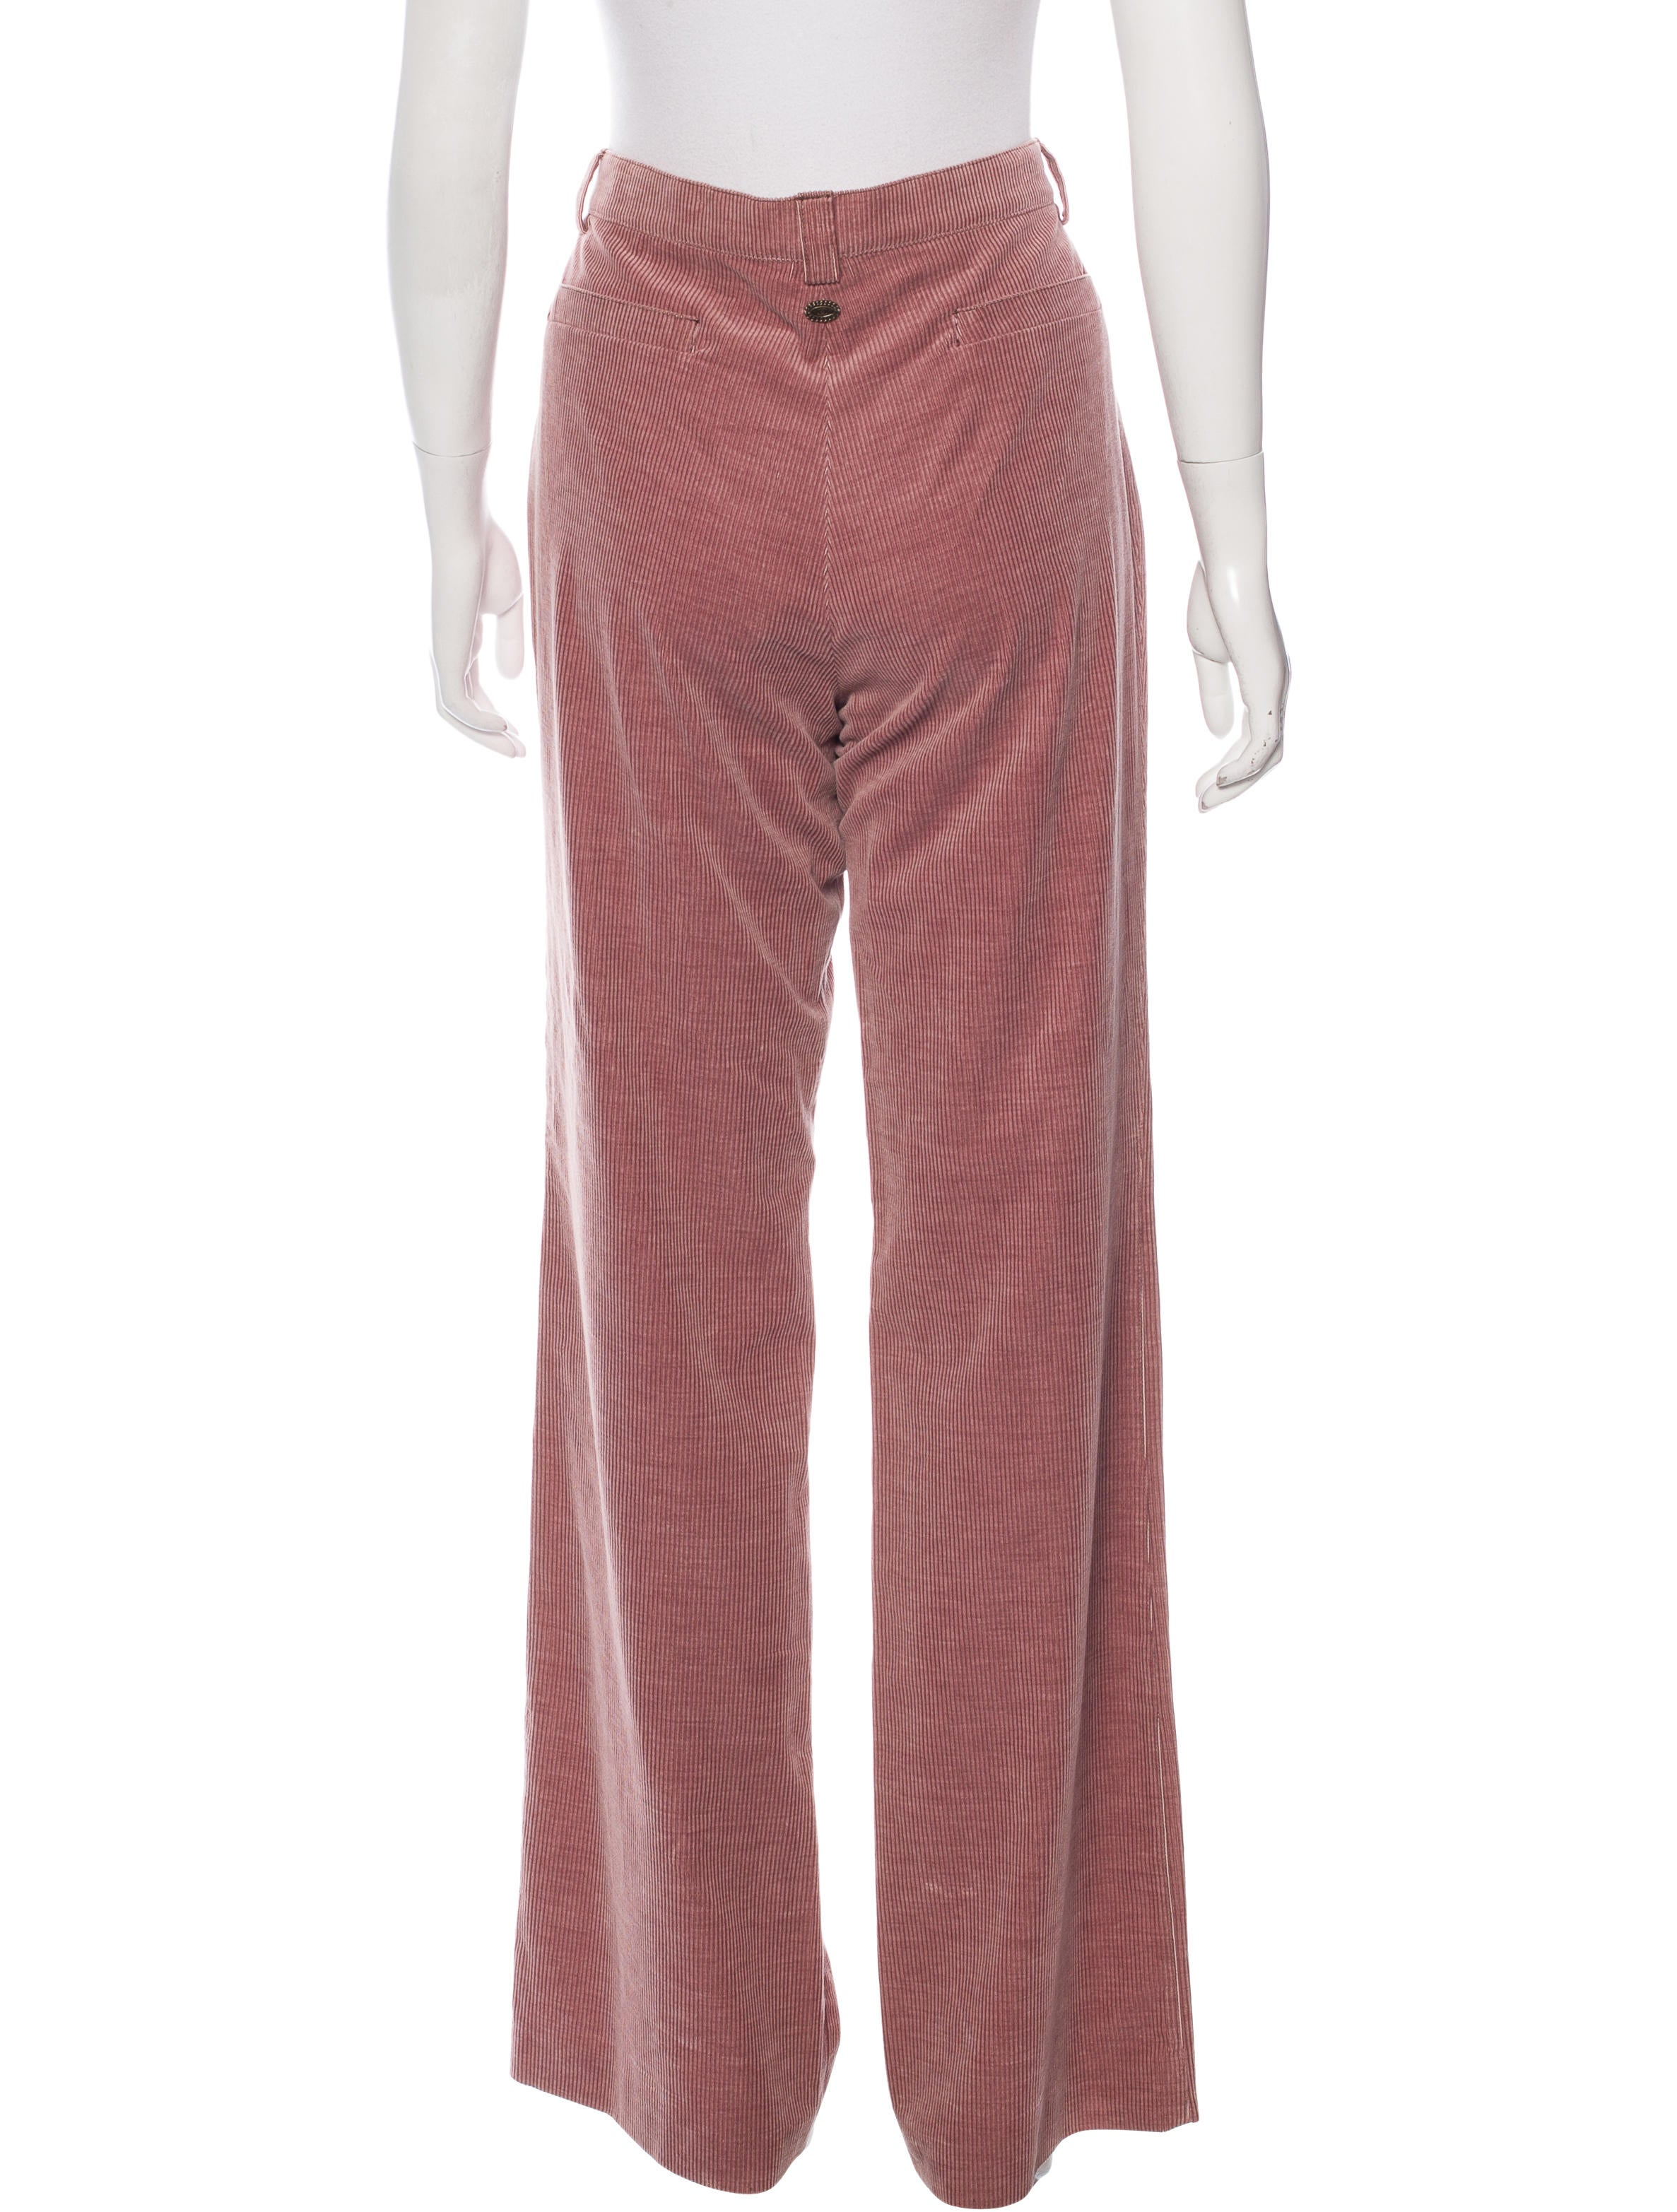 High waisted corduroy pants with a wide fit leg that flares out. Detailed with front slant pockets and patch pockets at the back. Length of inseam: 73cm /